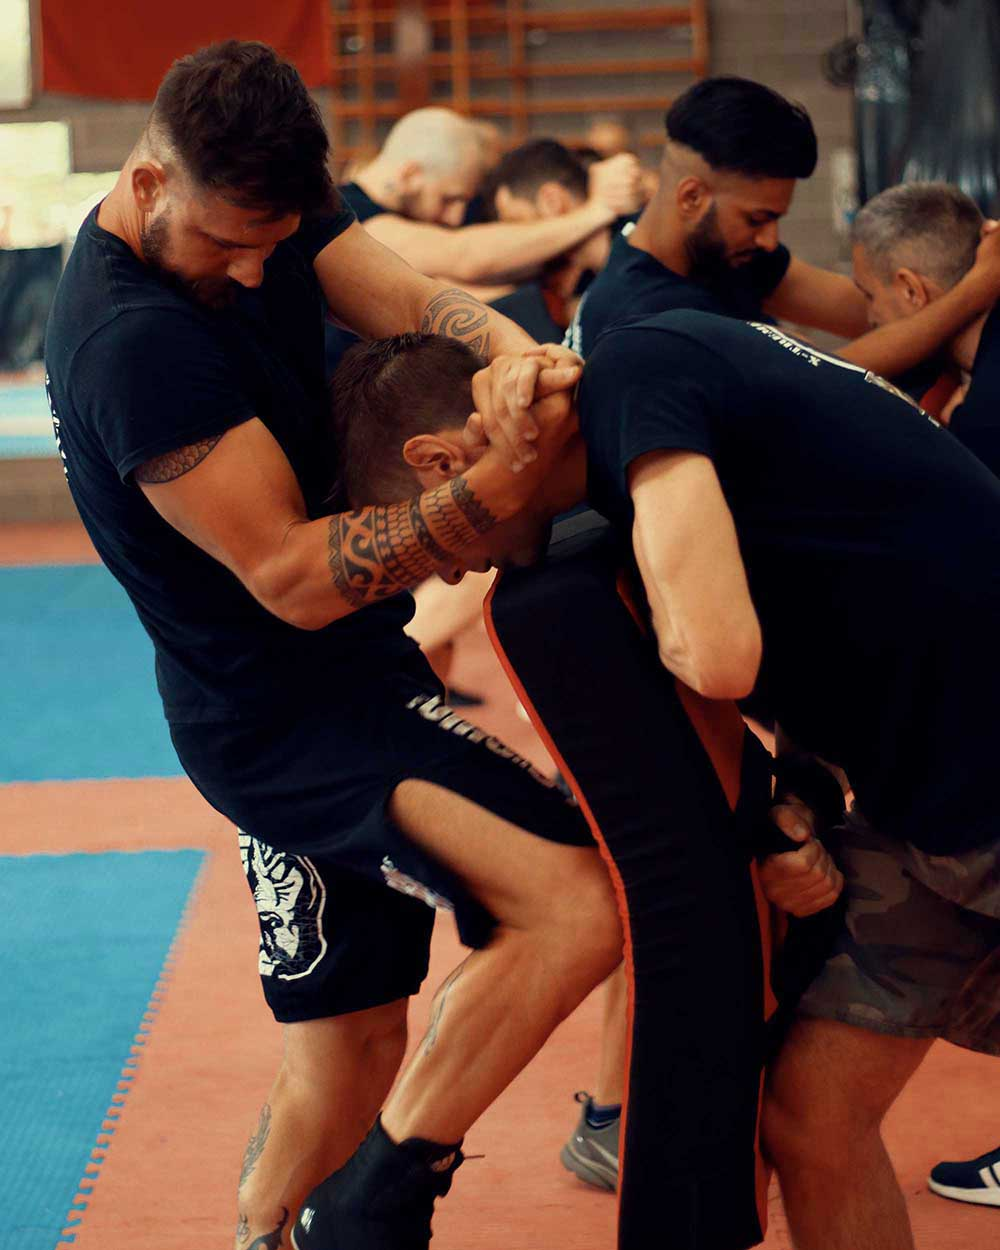 fighters training with clinch techniques workout